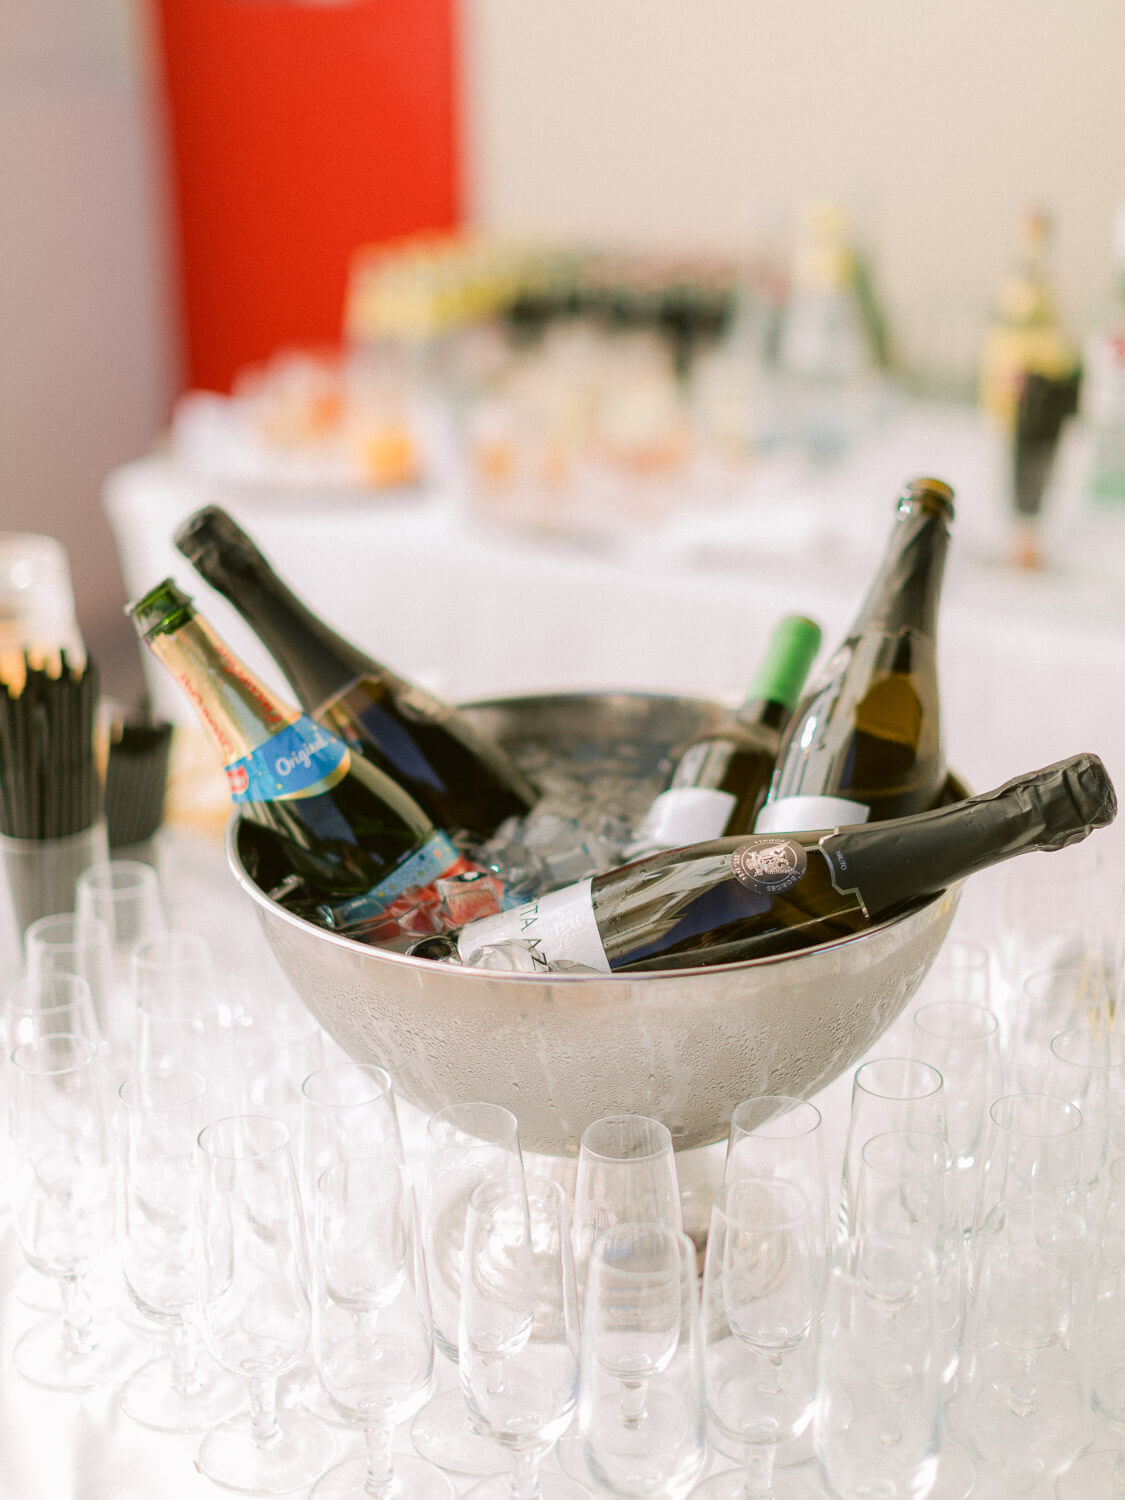 drinks table close up at wedding reception by Portugal Wedding Photographer